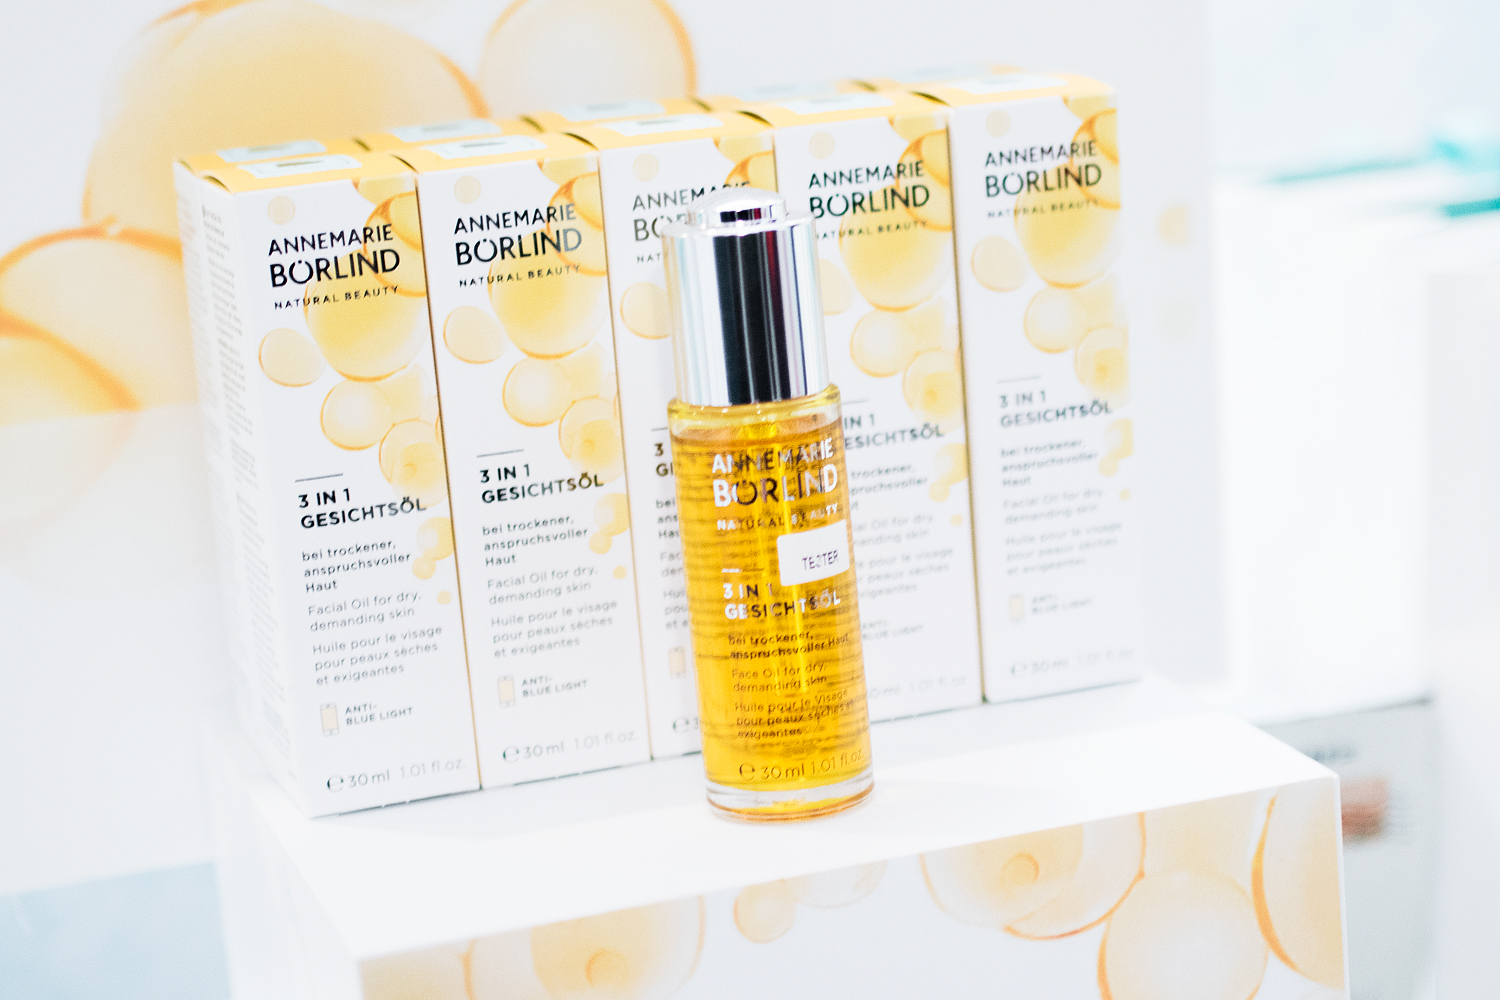 daisy beauty expo 2018 annemarie börlind 3-in-1 oil